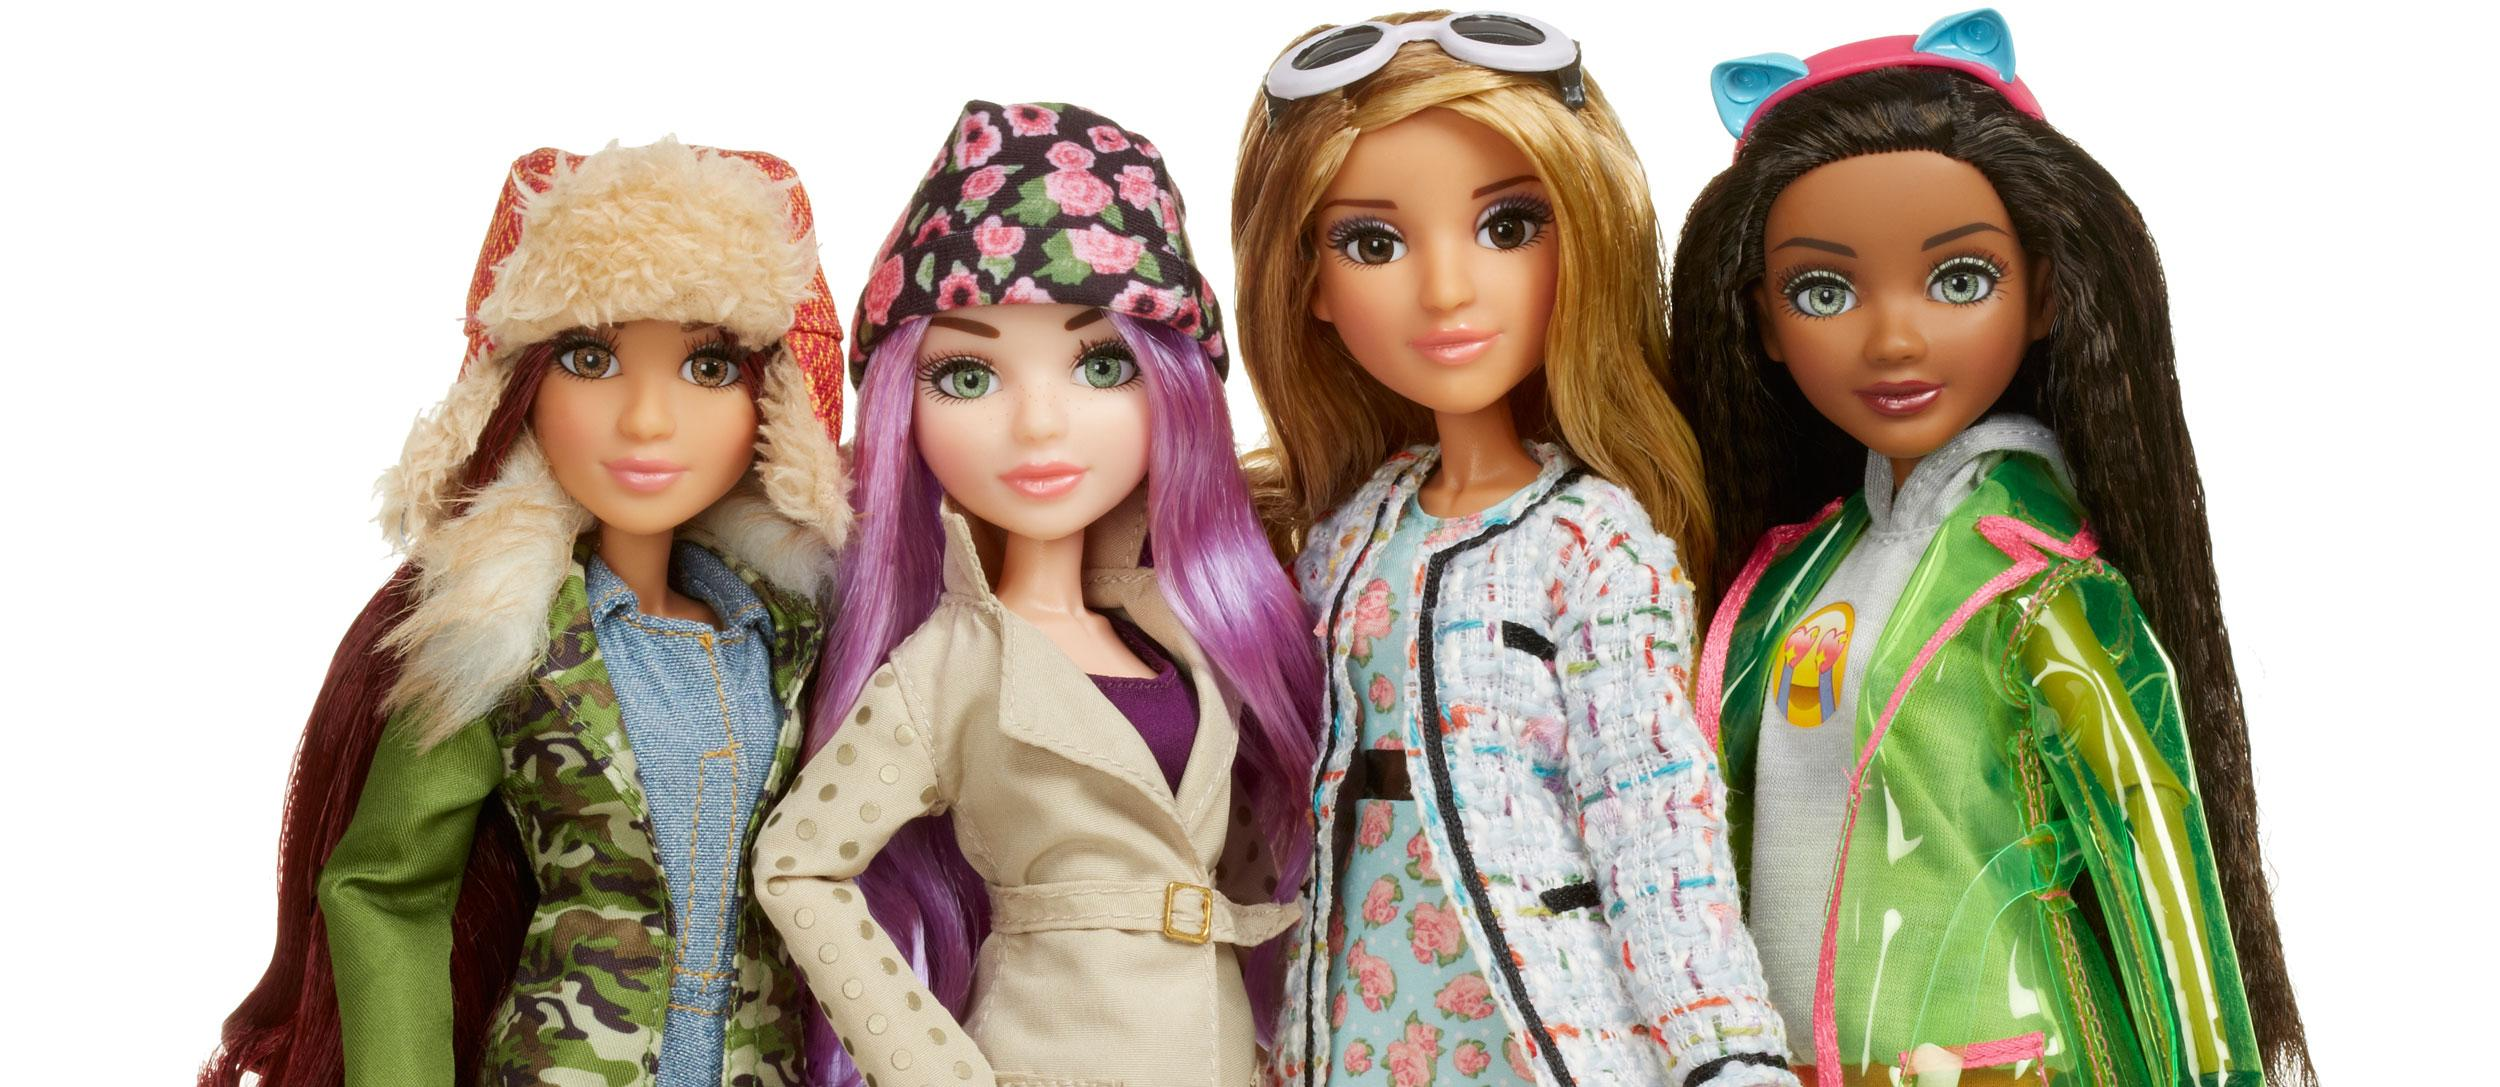 project mc2 experiment with doll camryn s